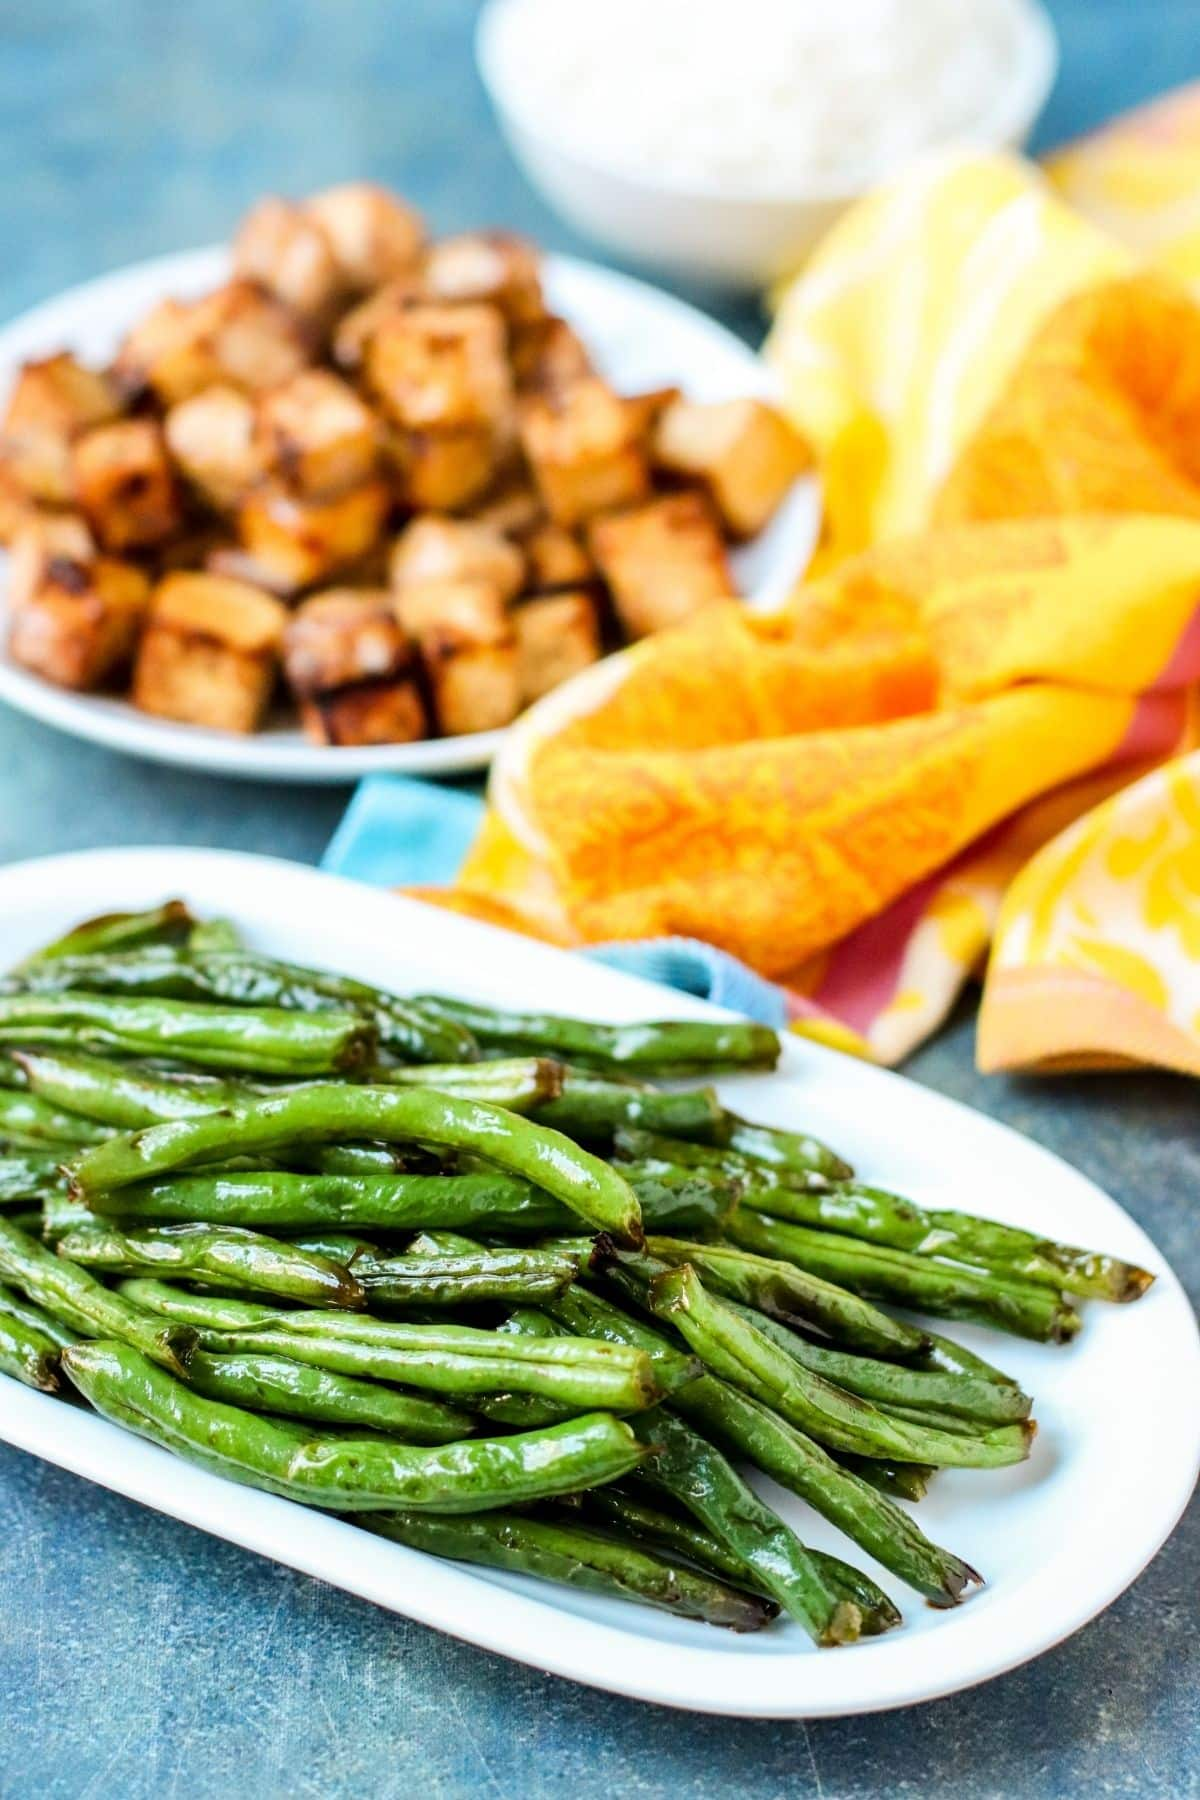 Platter of air fryer green beans with plate of tofu and bowl of rice in the background